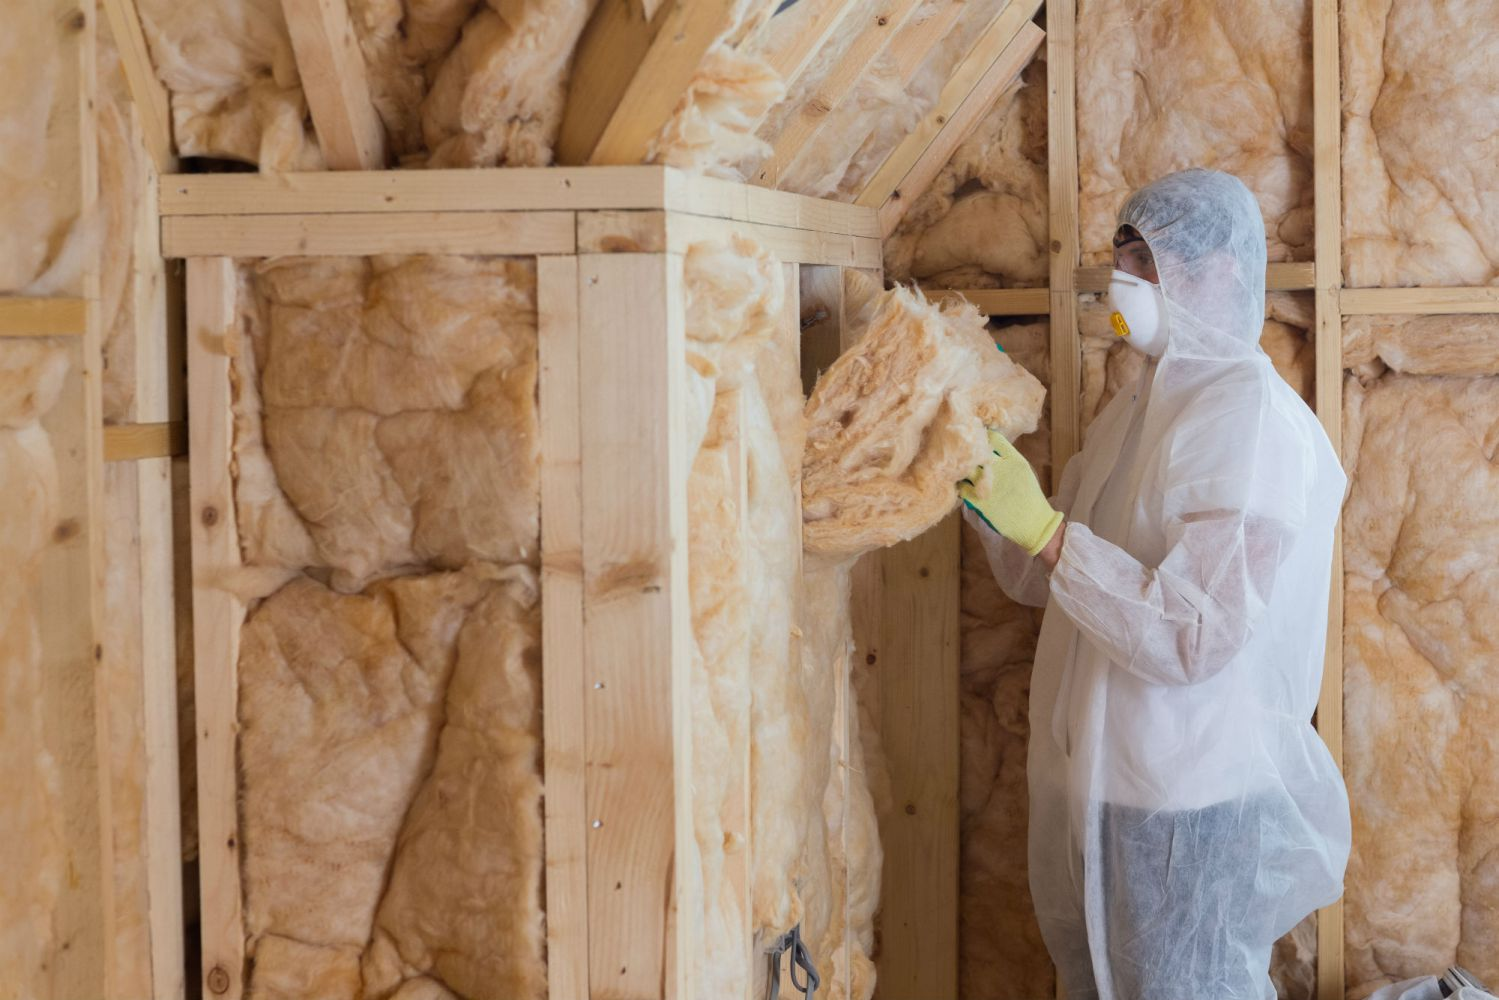 Providing energy saving through insulation home improvement services in Bolivar, MO